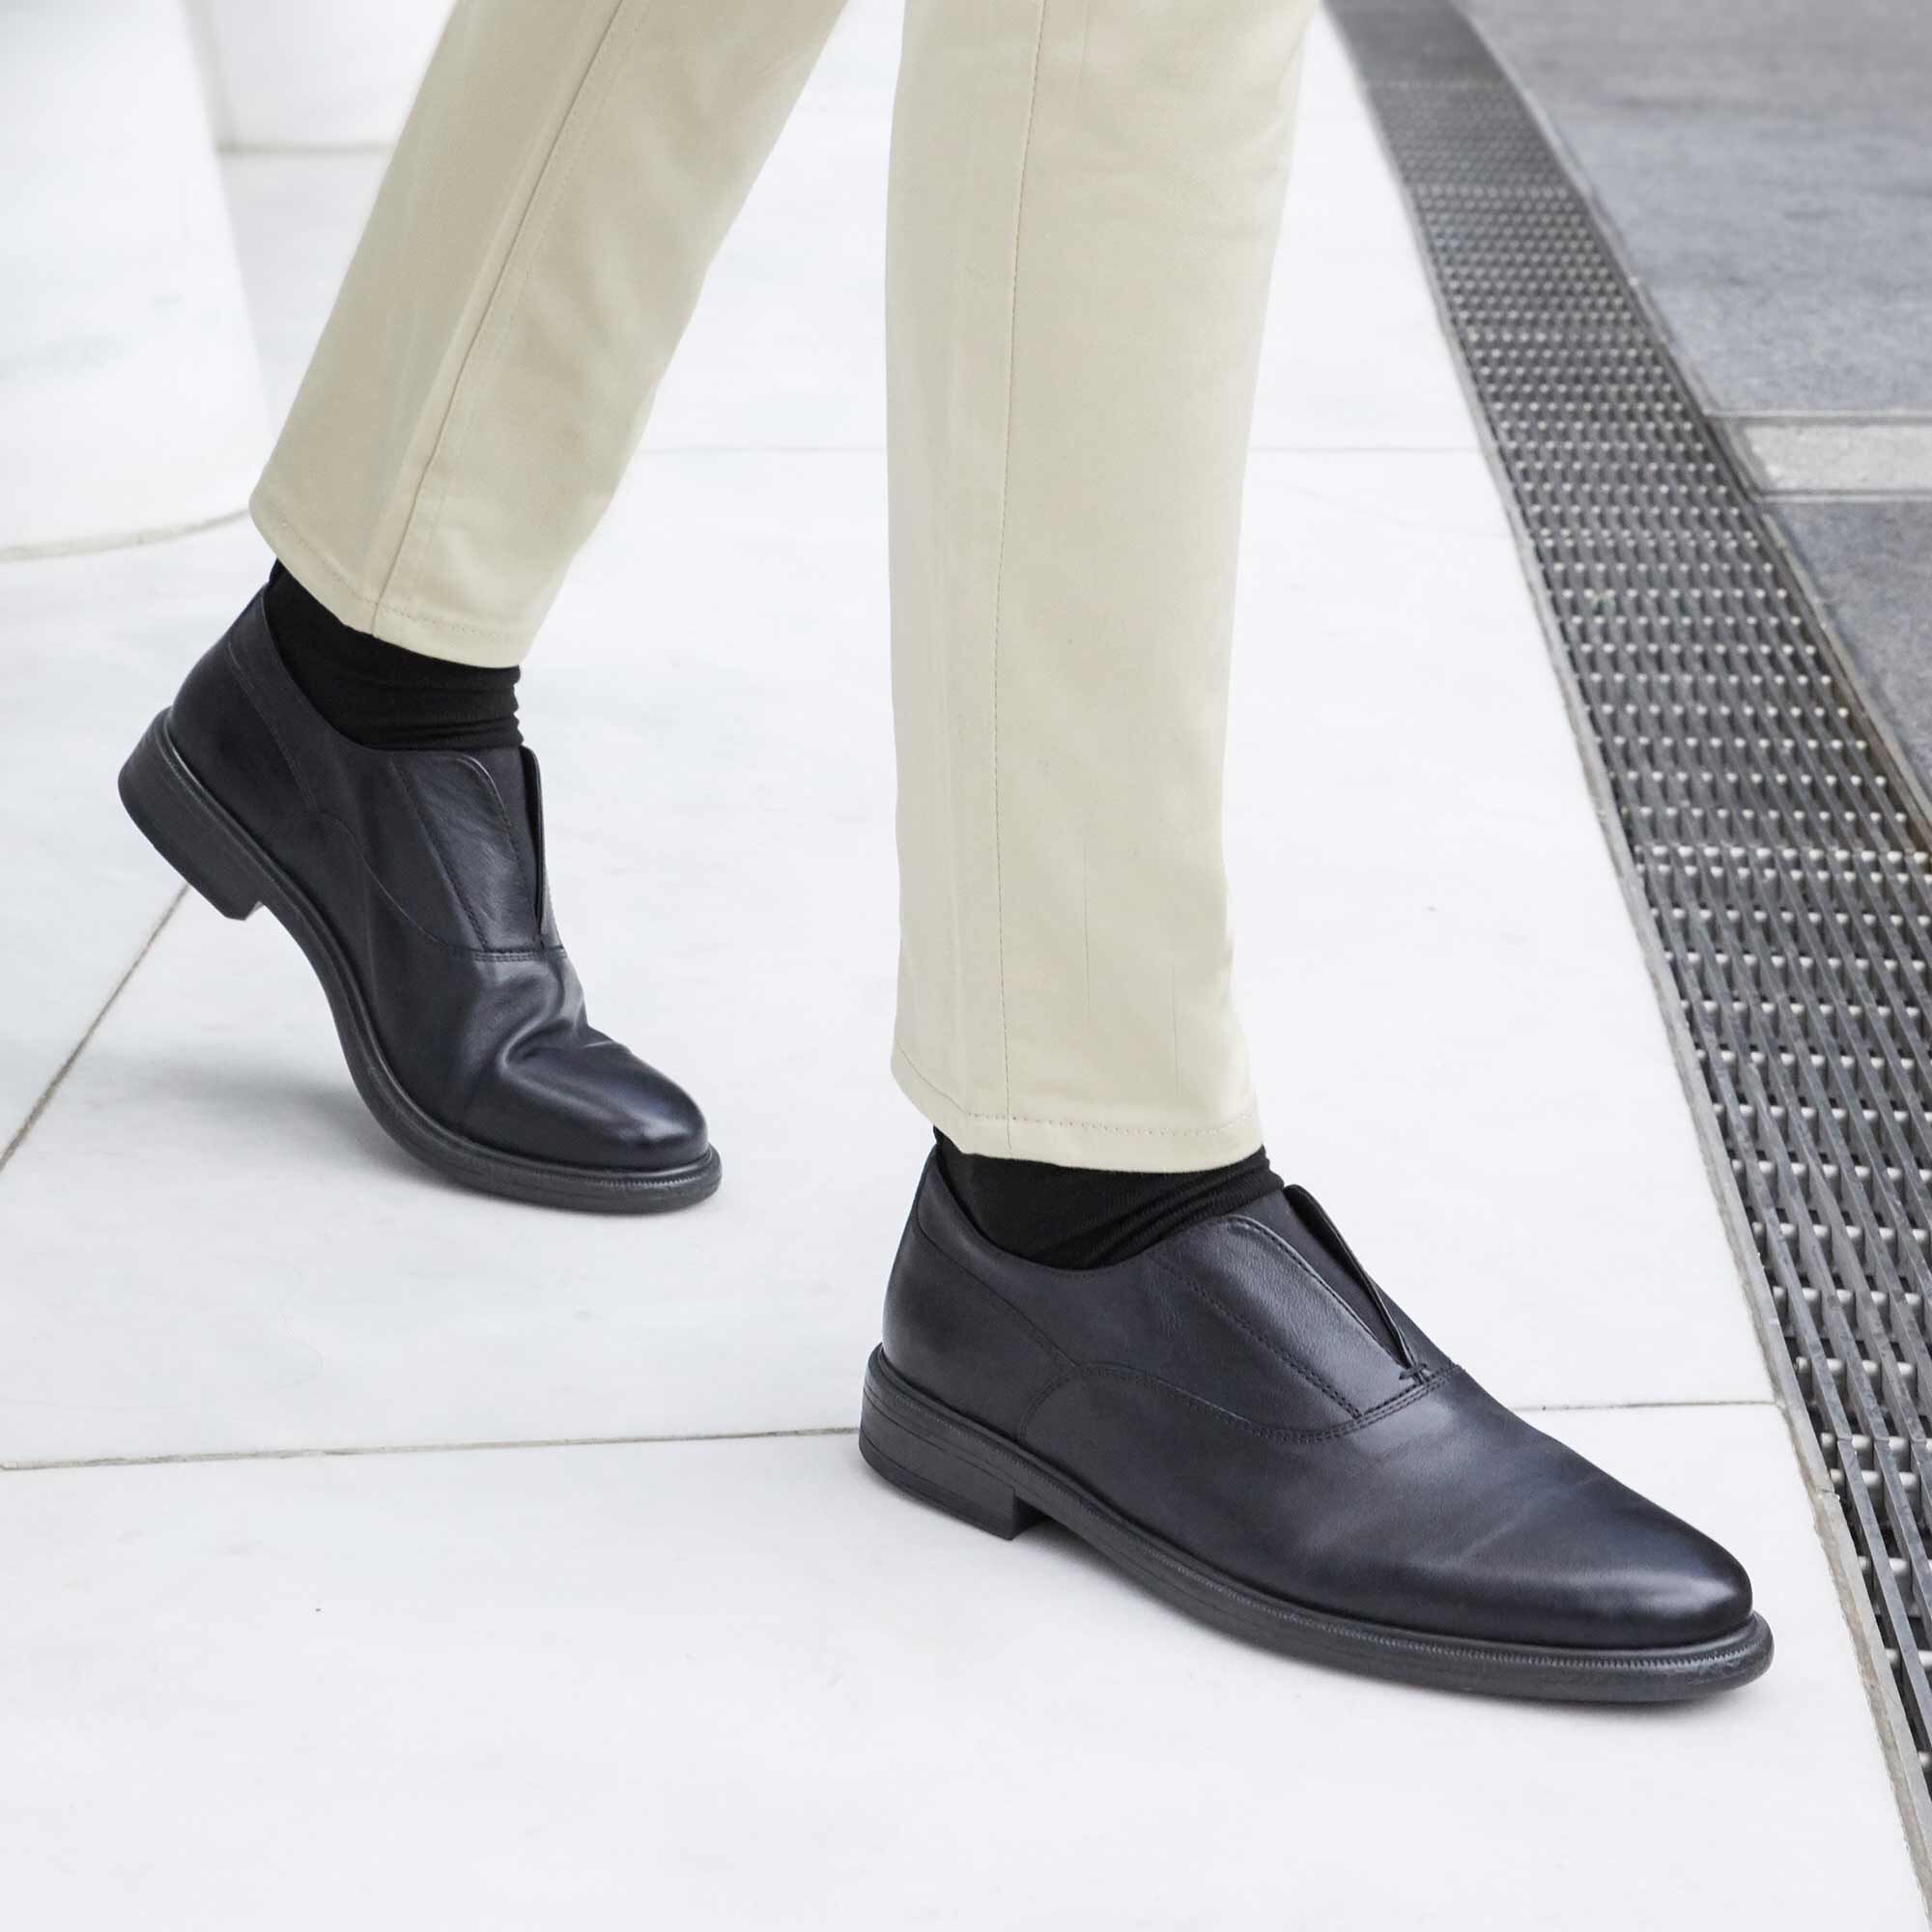 Geox TERENCE Man: Black Shoes   Geox ® Official Store